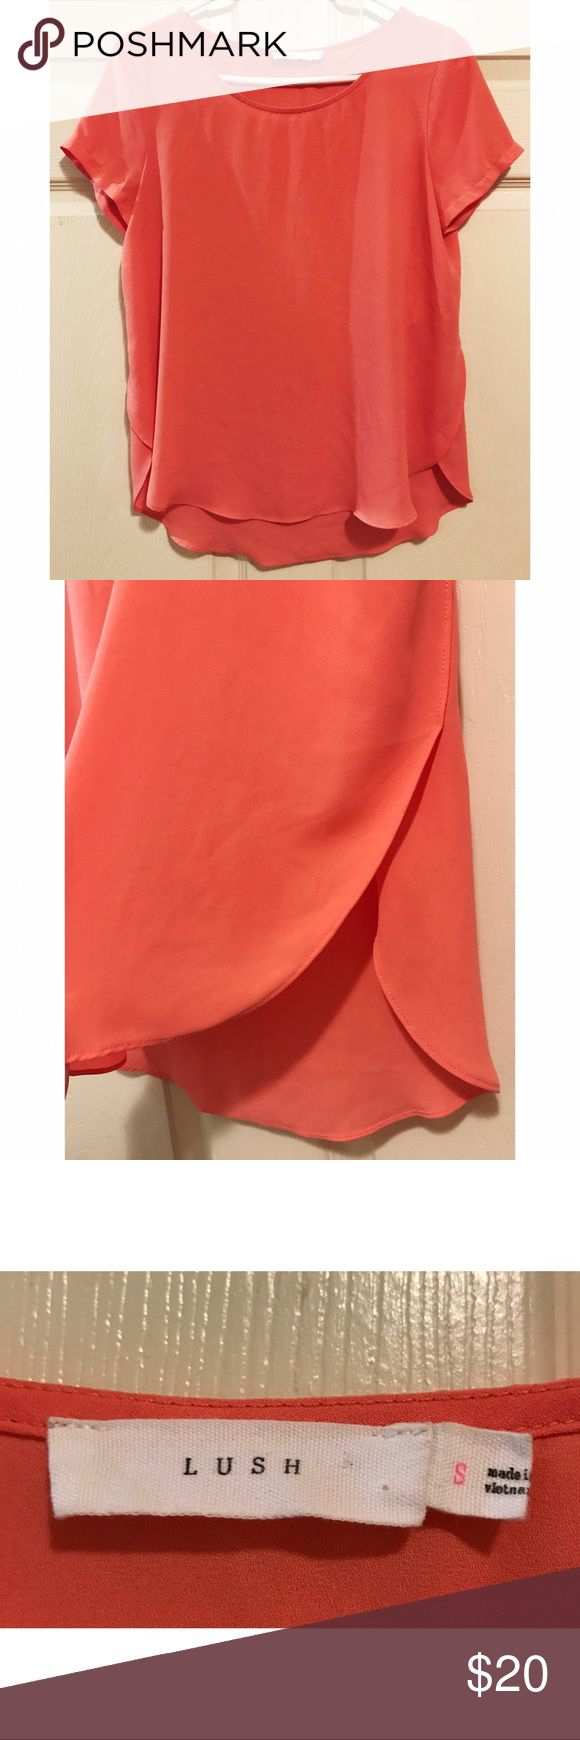 Lush • NWOT Coral Blouse Lush • NWOT Coral Blouse. Cute open side detailing as shown in photo. Lush brand. Absolutely adorable. Size Small. Lush Tops Blouses